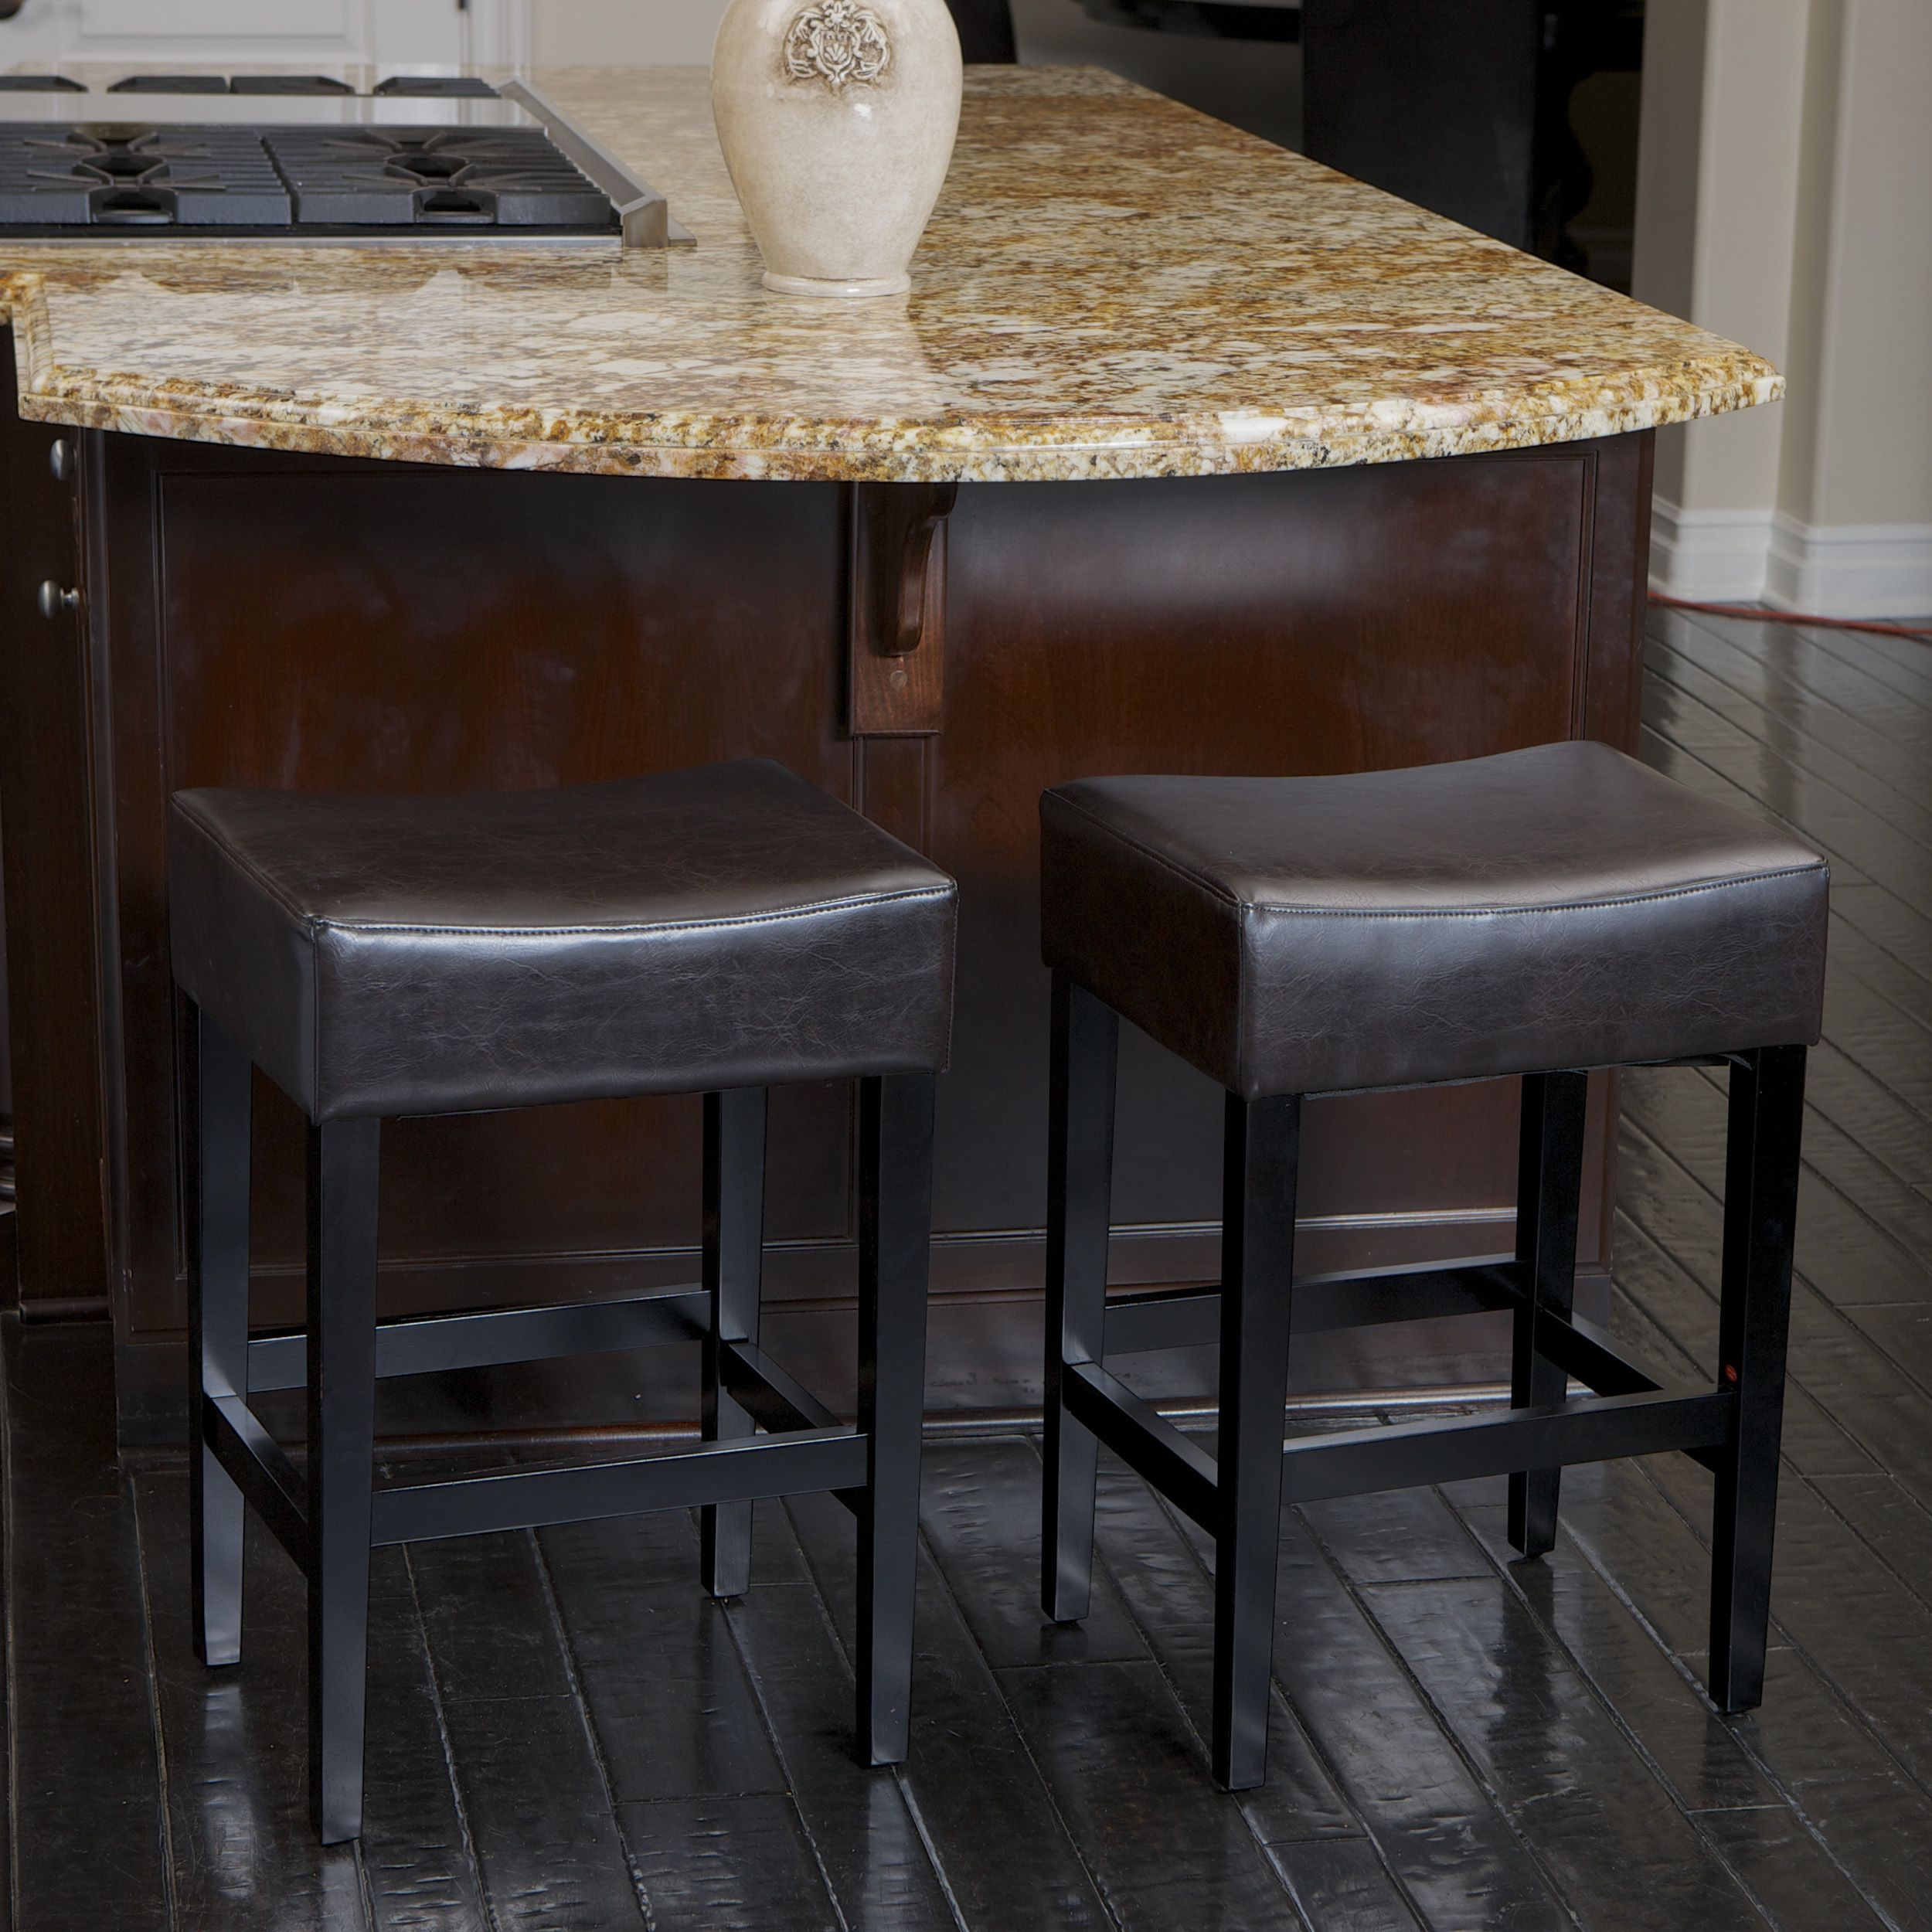 Leather Counter Stools Help Transform A Breakfast Bar Into